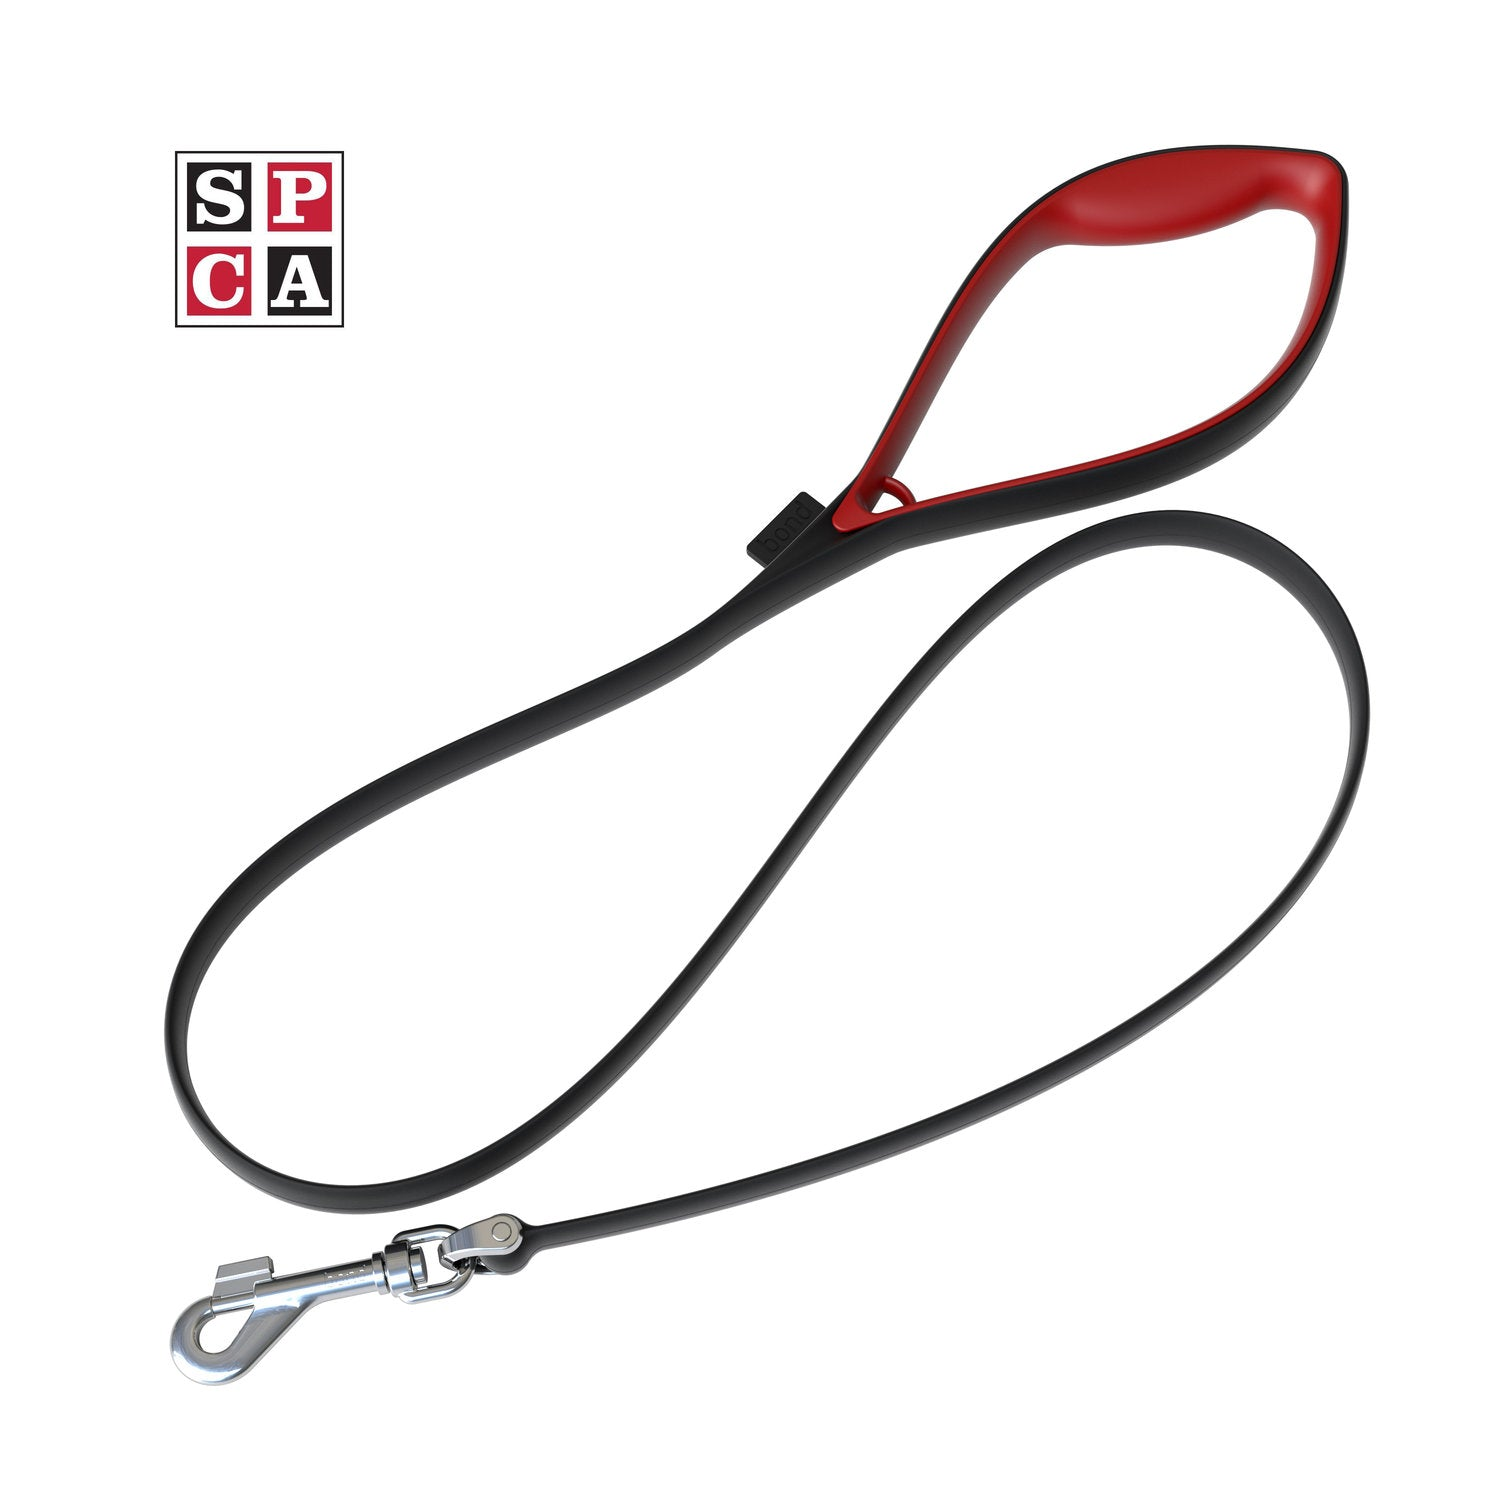 BOND Leash - Black Pepper